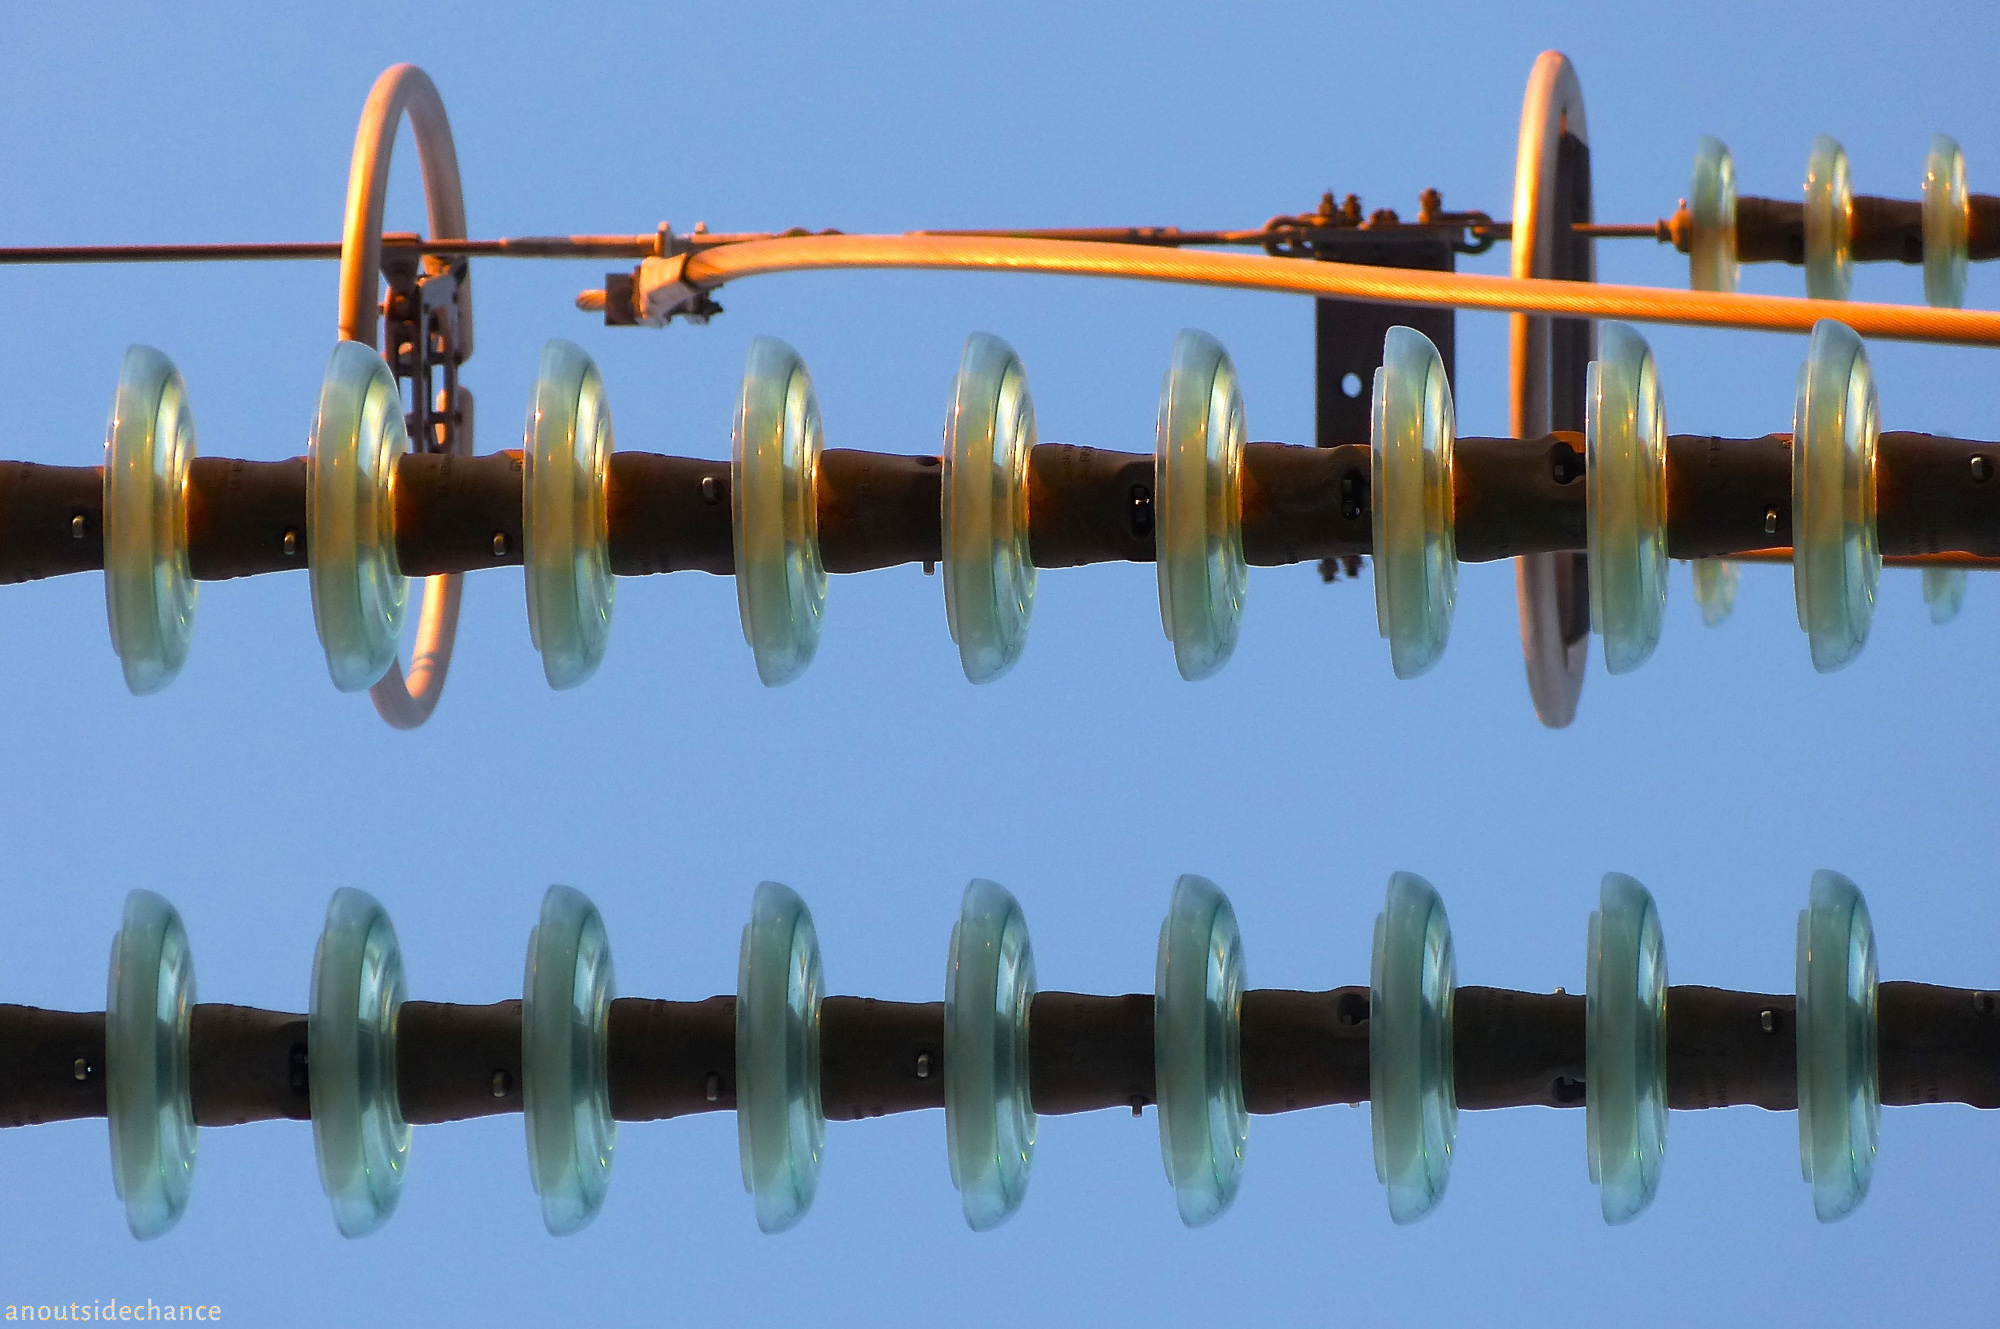 Insulators on high-voltage electricity transmission line.